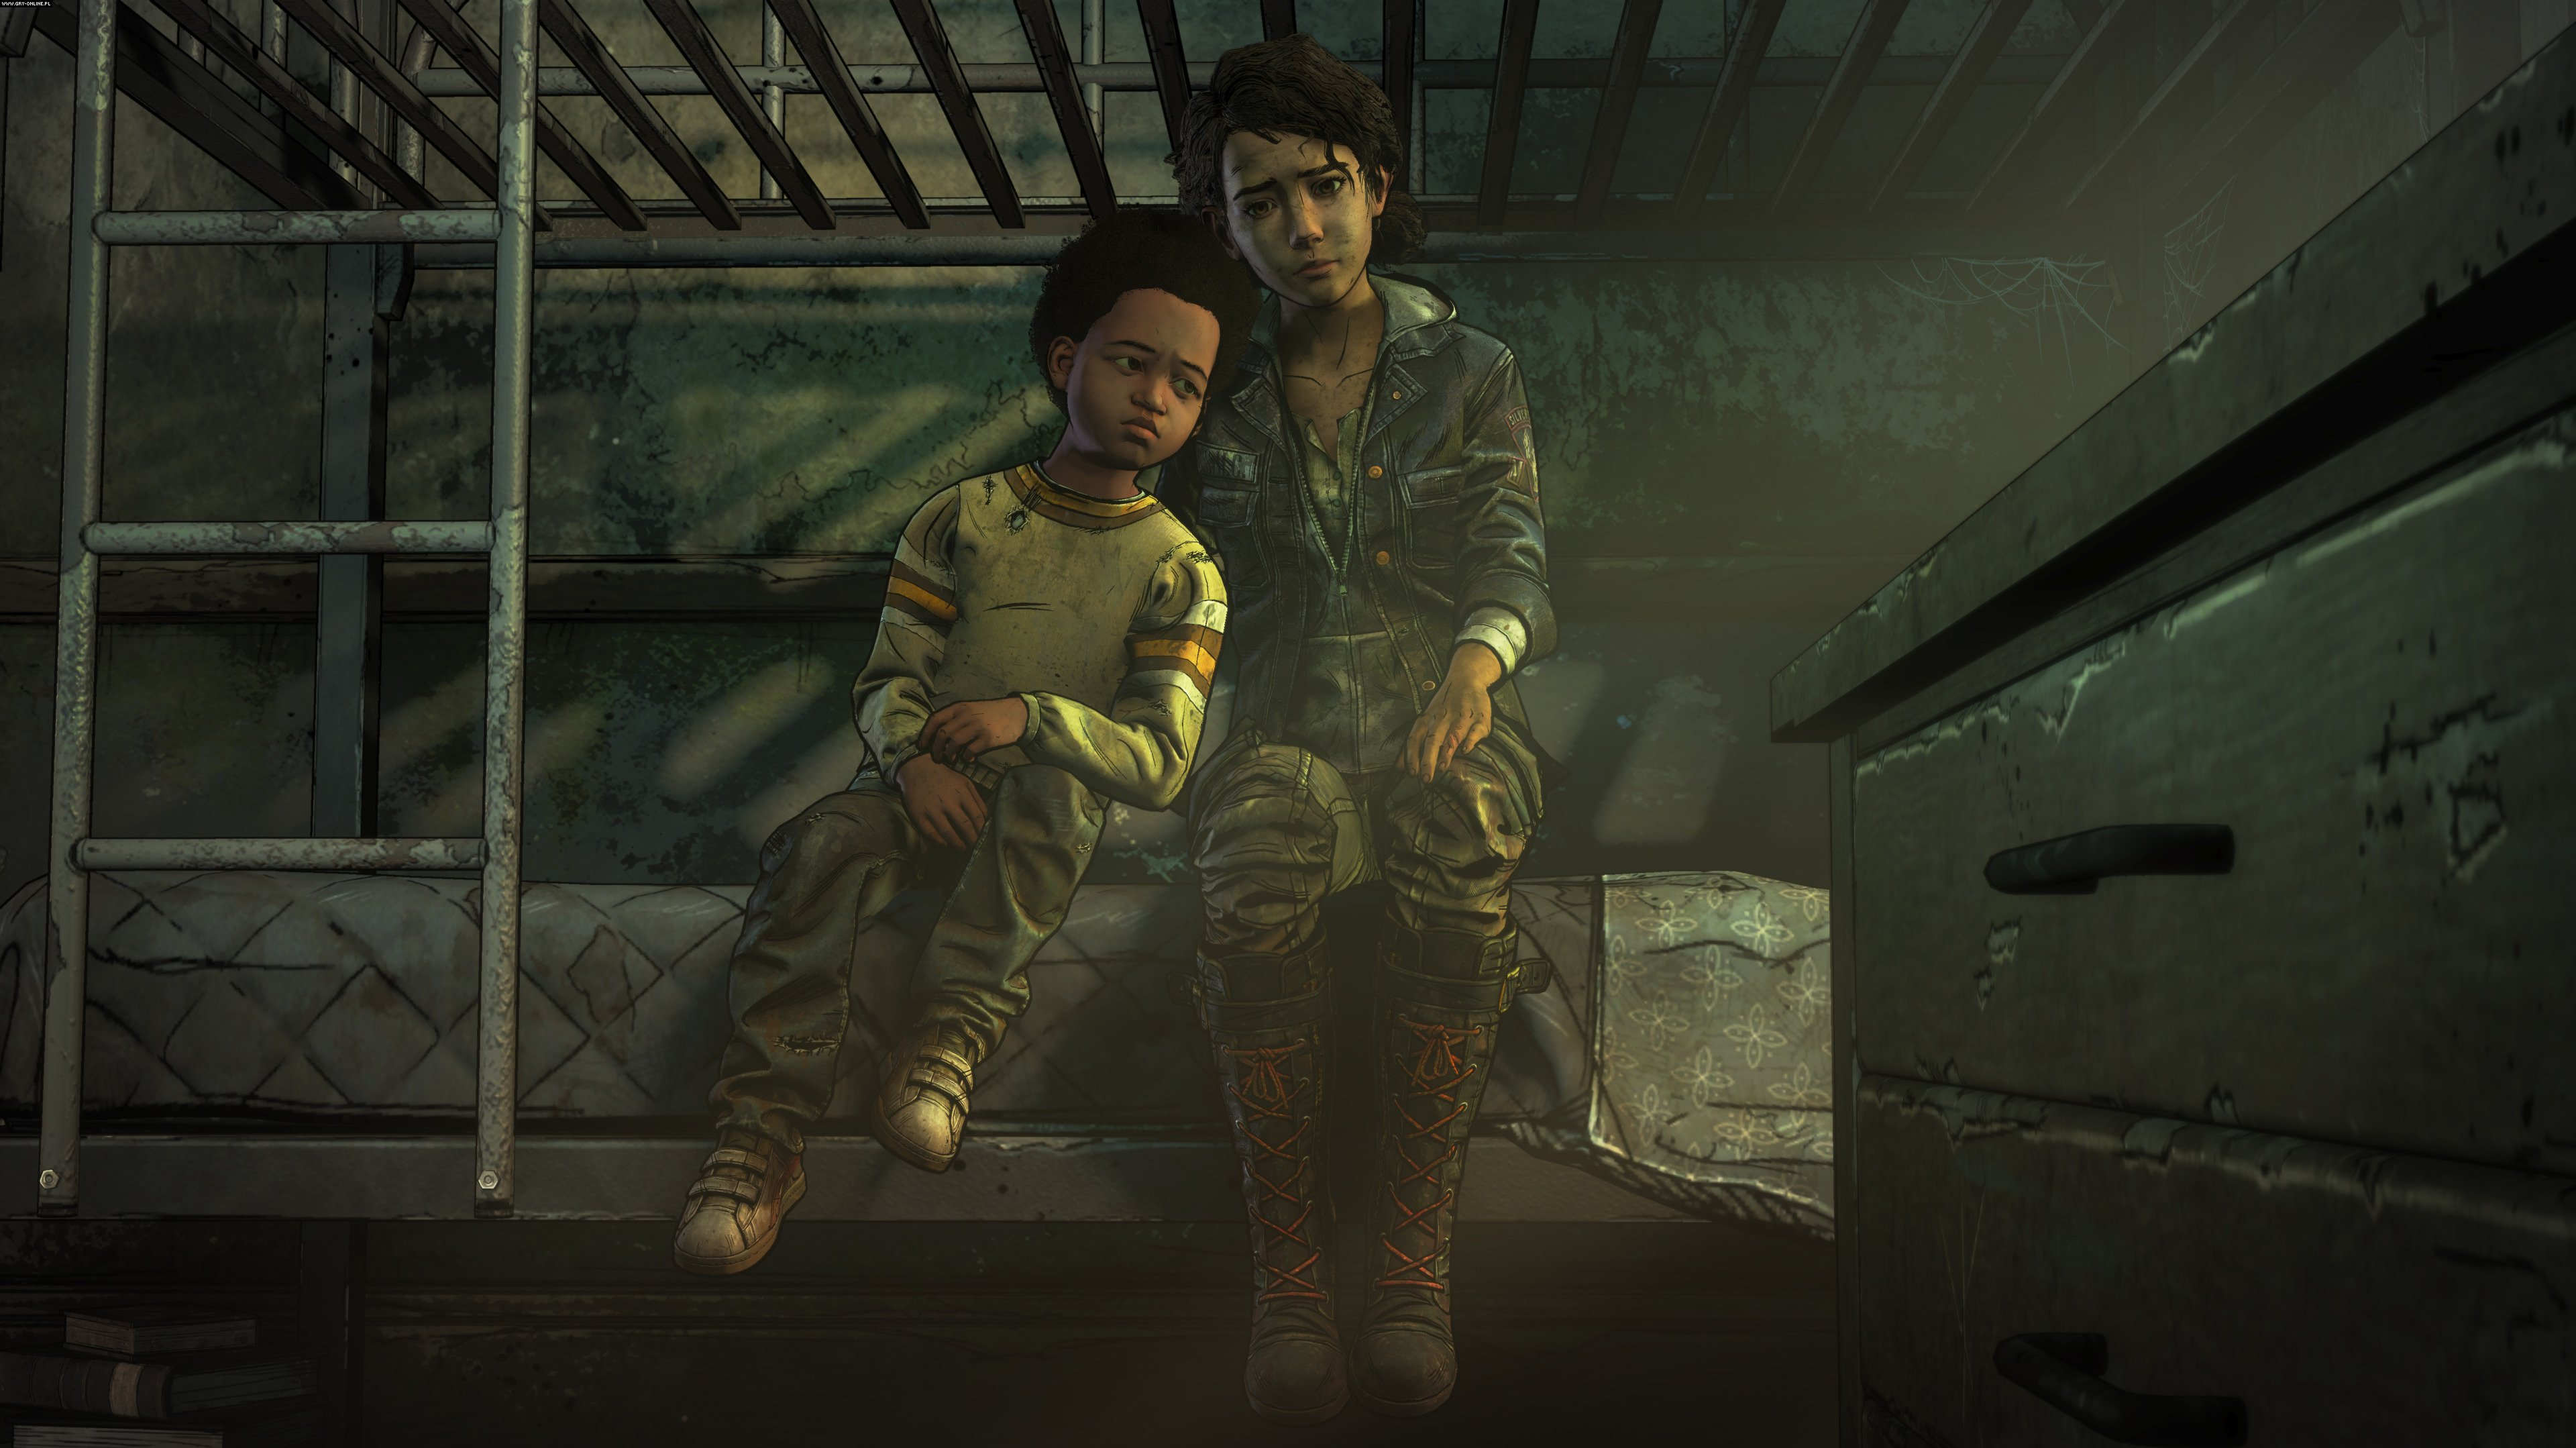 The Walking Dead: The Final Season PC, PS4, XONE, AND, iOS, Switch Gry Screen 18/29, Telltale Games